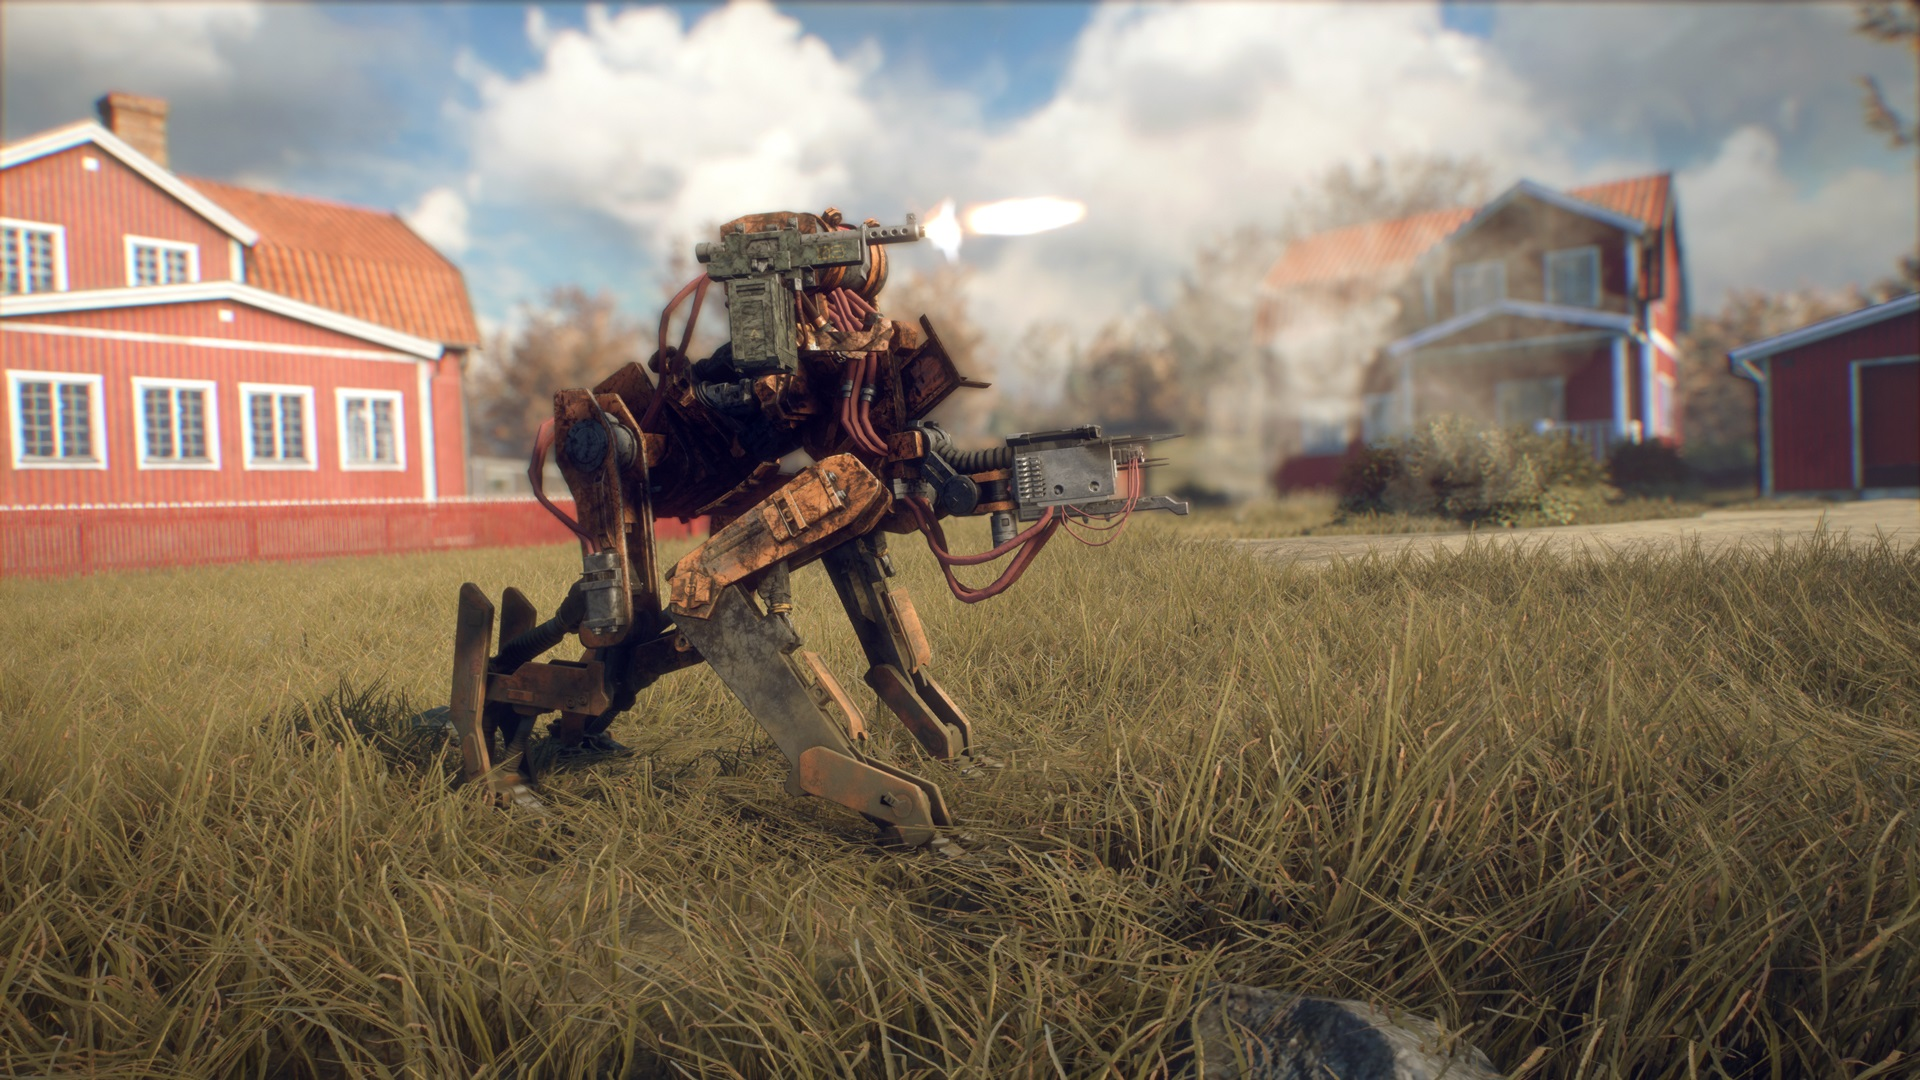 Generation Zero beginner's guide: six indispensable tips to